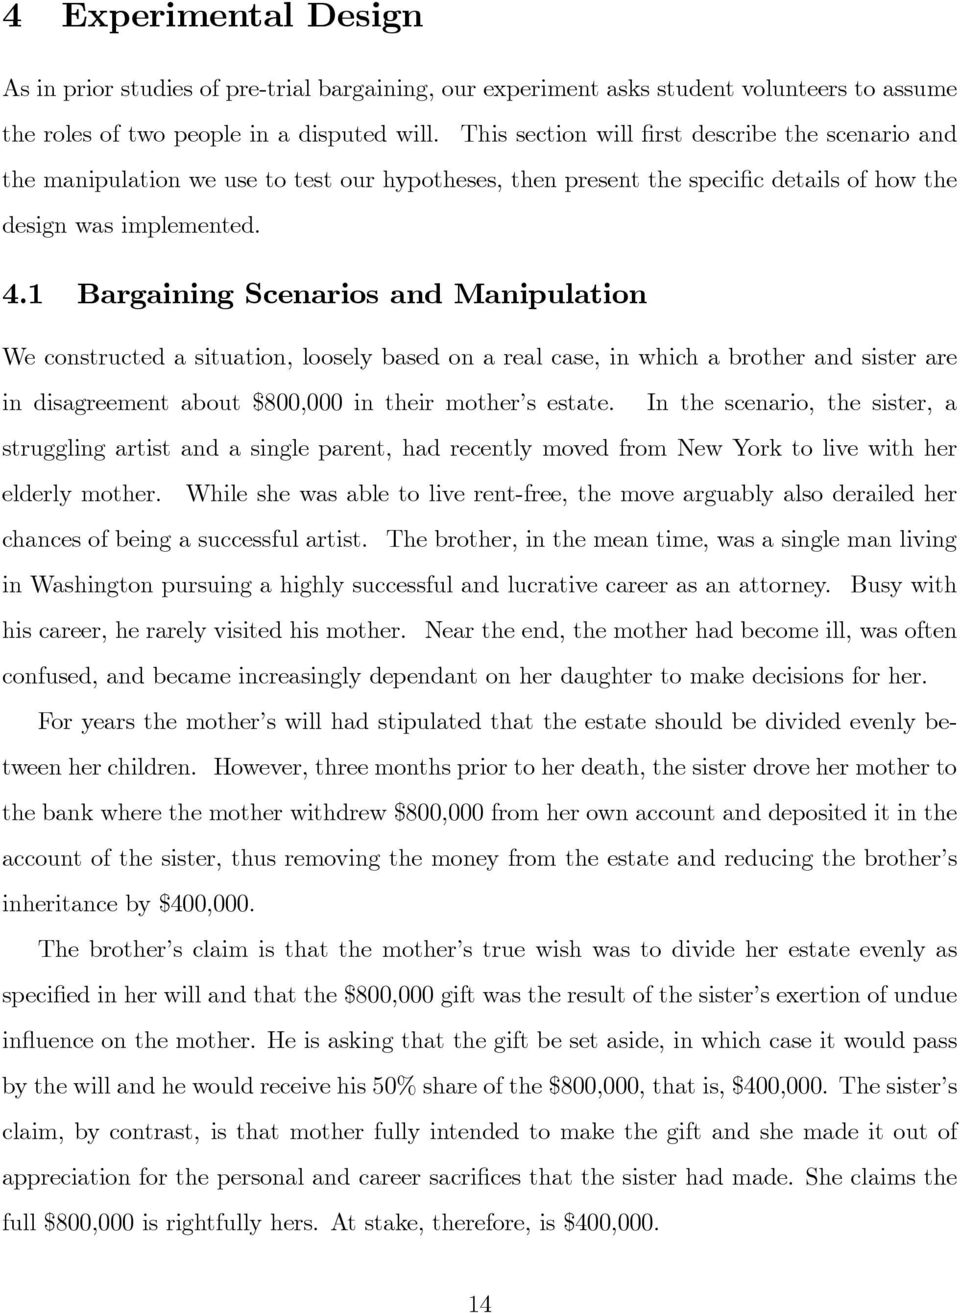 1 Bargaining Scenarios and Manipulation We constructed a situation, loosely based on a real case, in which a brother and sister are in disagreement about $800,000 in their mother s estate.